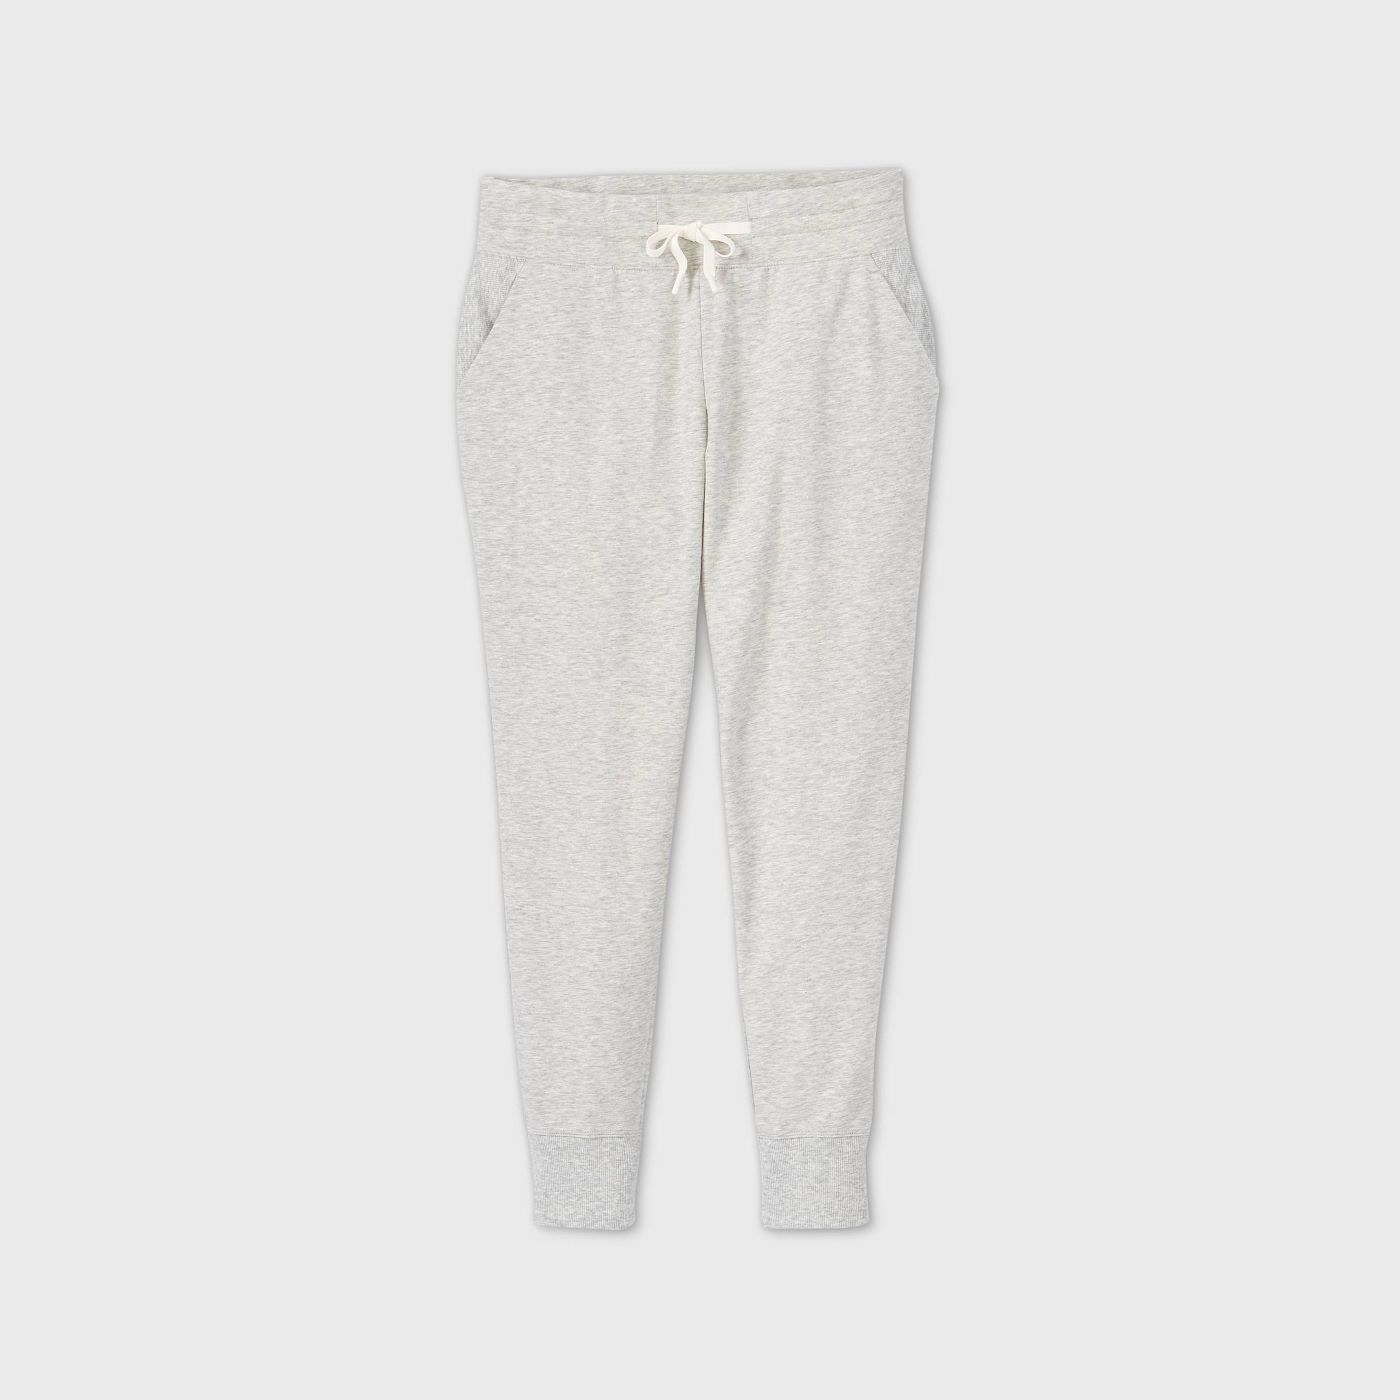 Joggers in white heather, on a white background